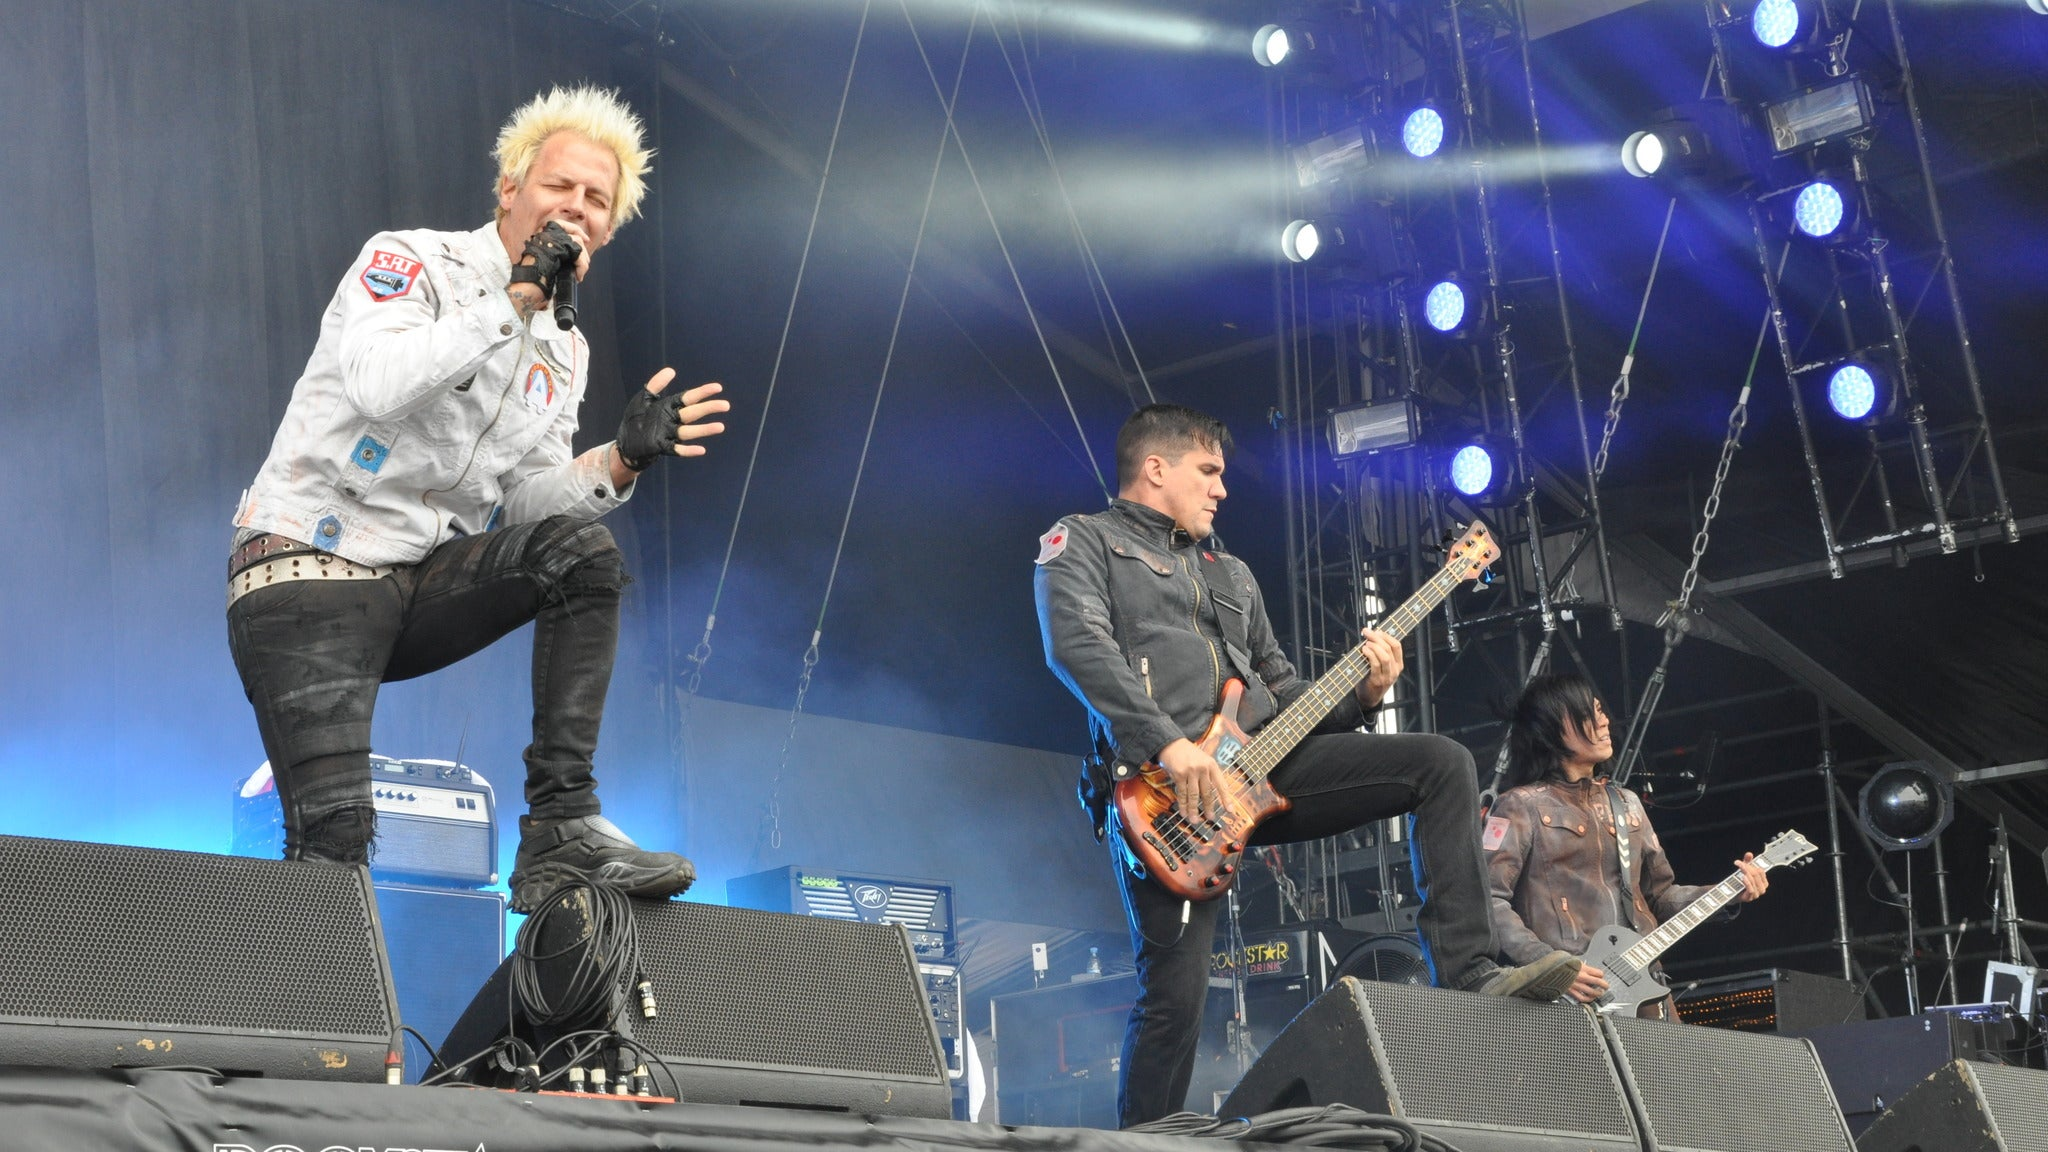 Powerman 5000 at Black Sheep